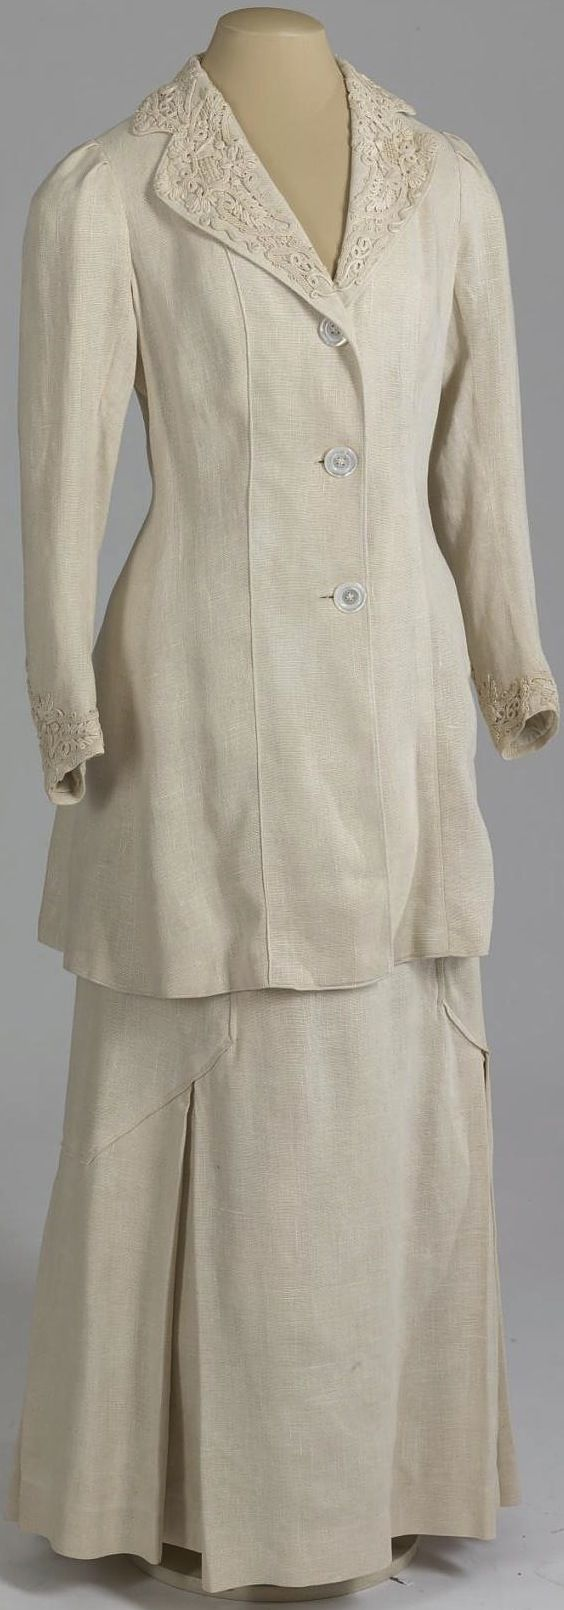 """Suit (""""Tailleur"""") belonging to Dowager Empress Maria Fyodorovna, Russia, 1910-11. Linen, cambric, soutache, mother-of-pearl. Collection of State Hermitage Museum."""